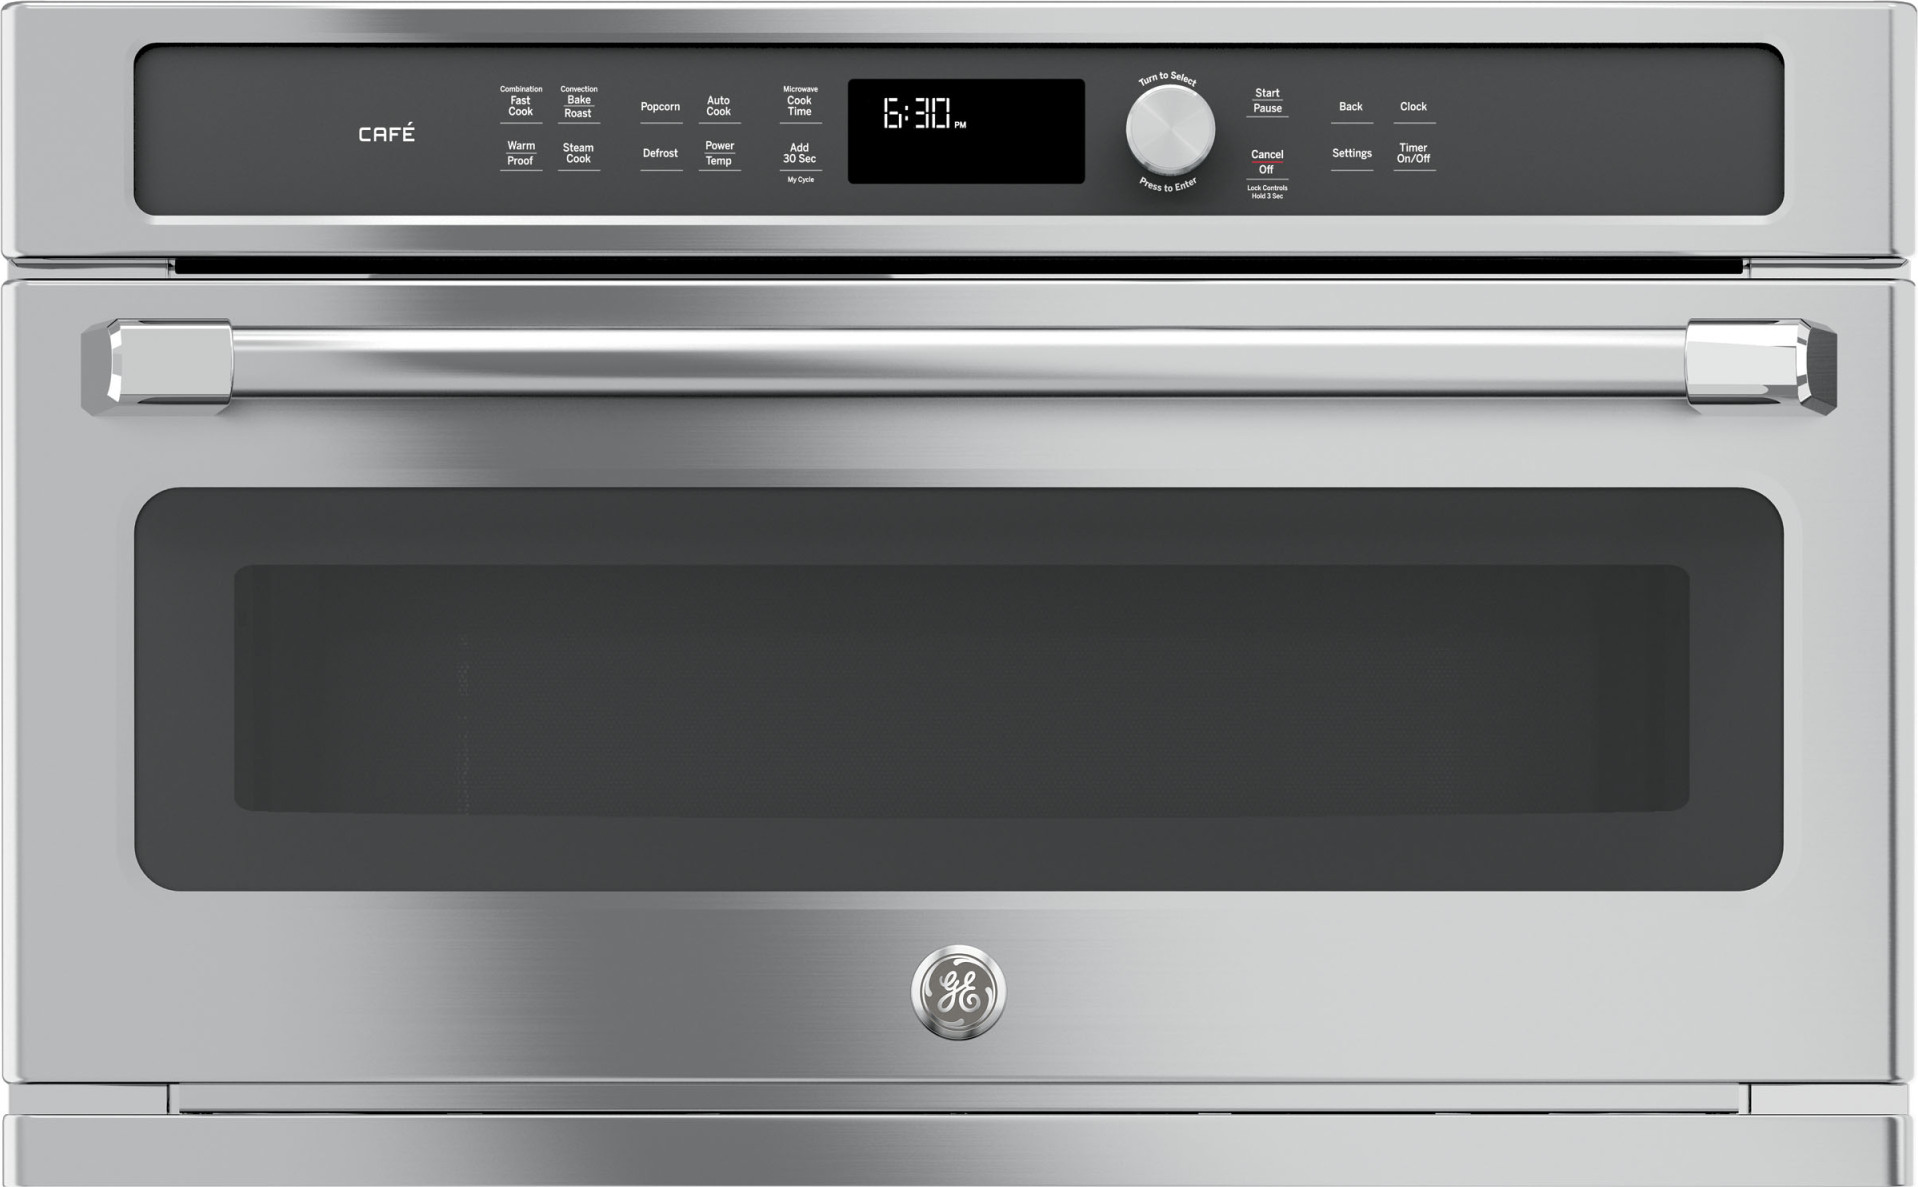 Cwb7030slss Ge Cafe 30 1 7 Built In Microwave And Convection Oven Stainless Steel